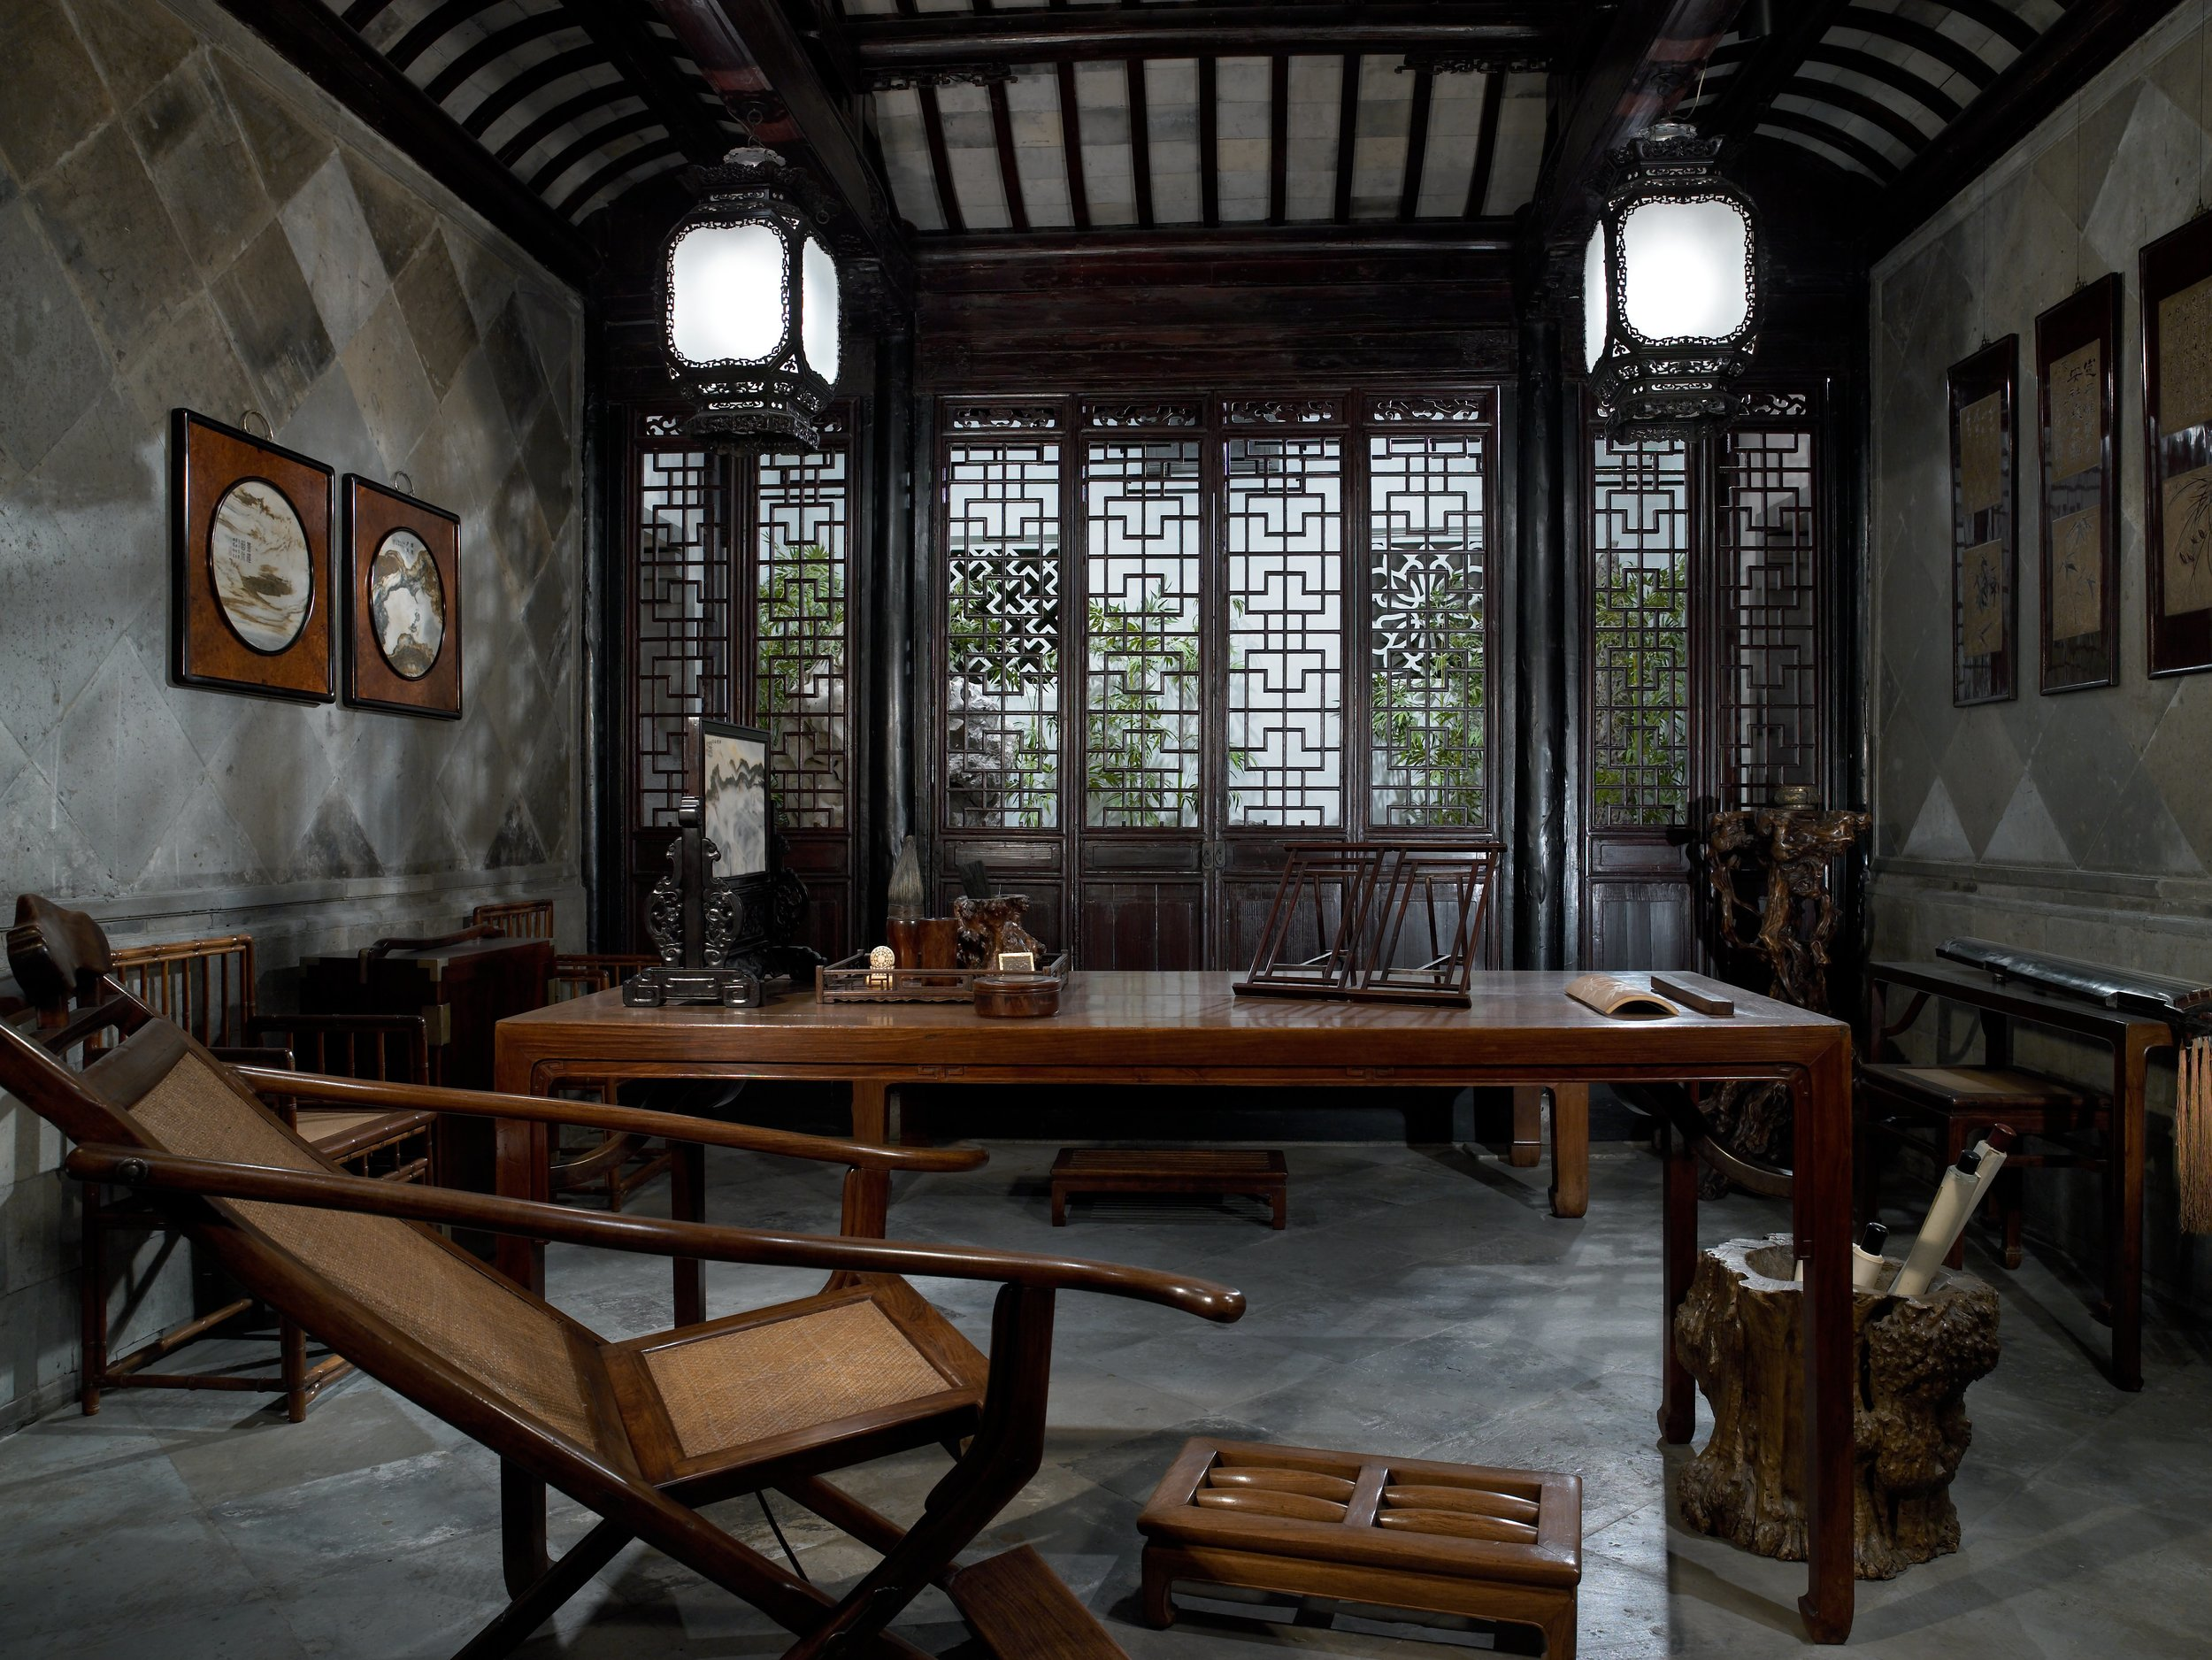 The Studio of Gratifying Discourse, 1797 - Unknown artist china.jpg